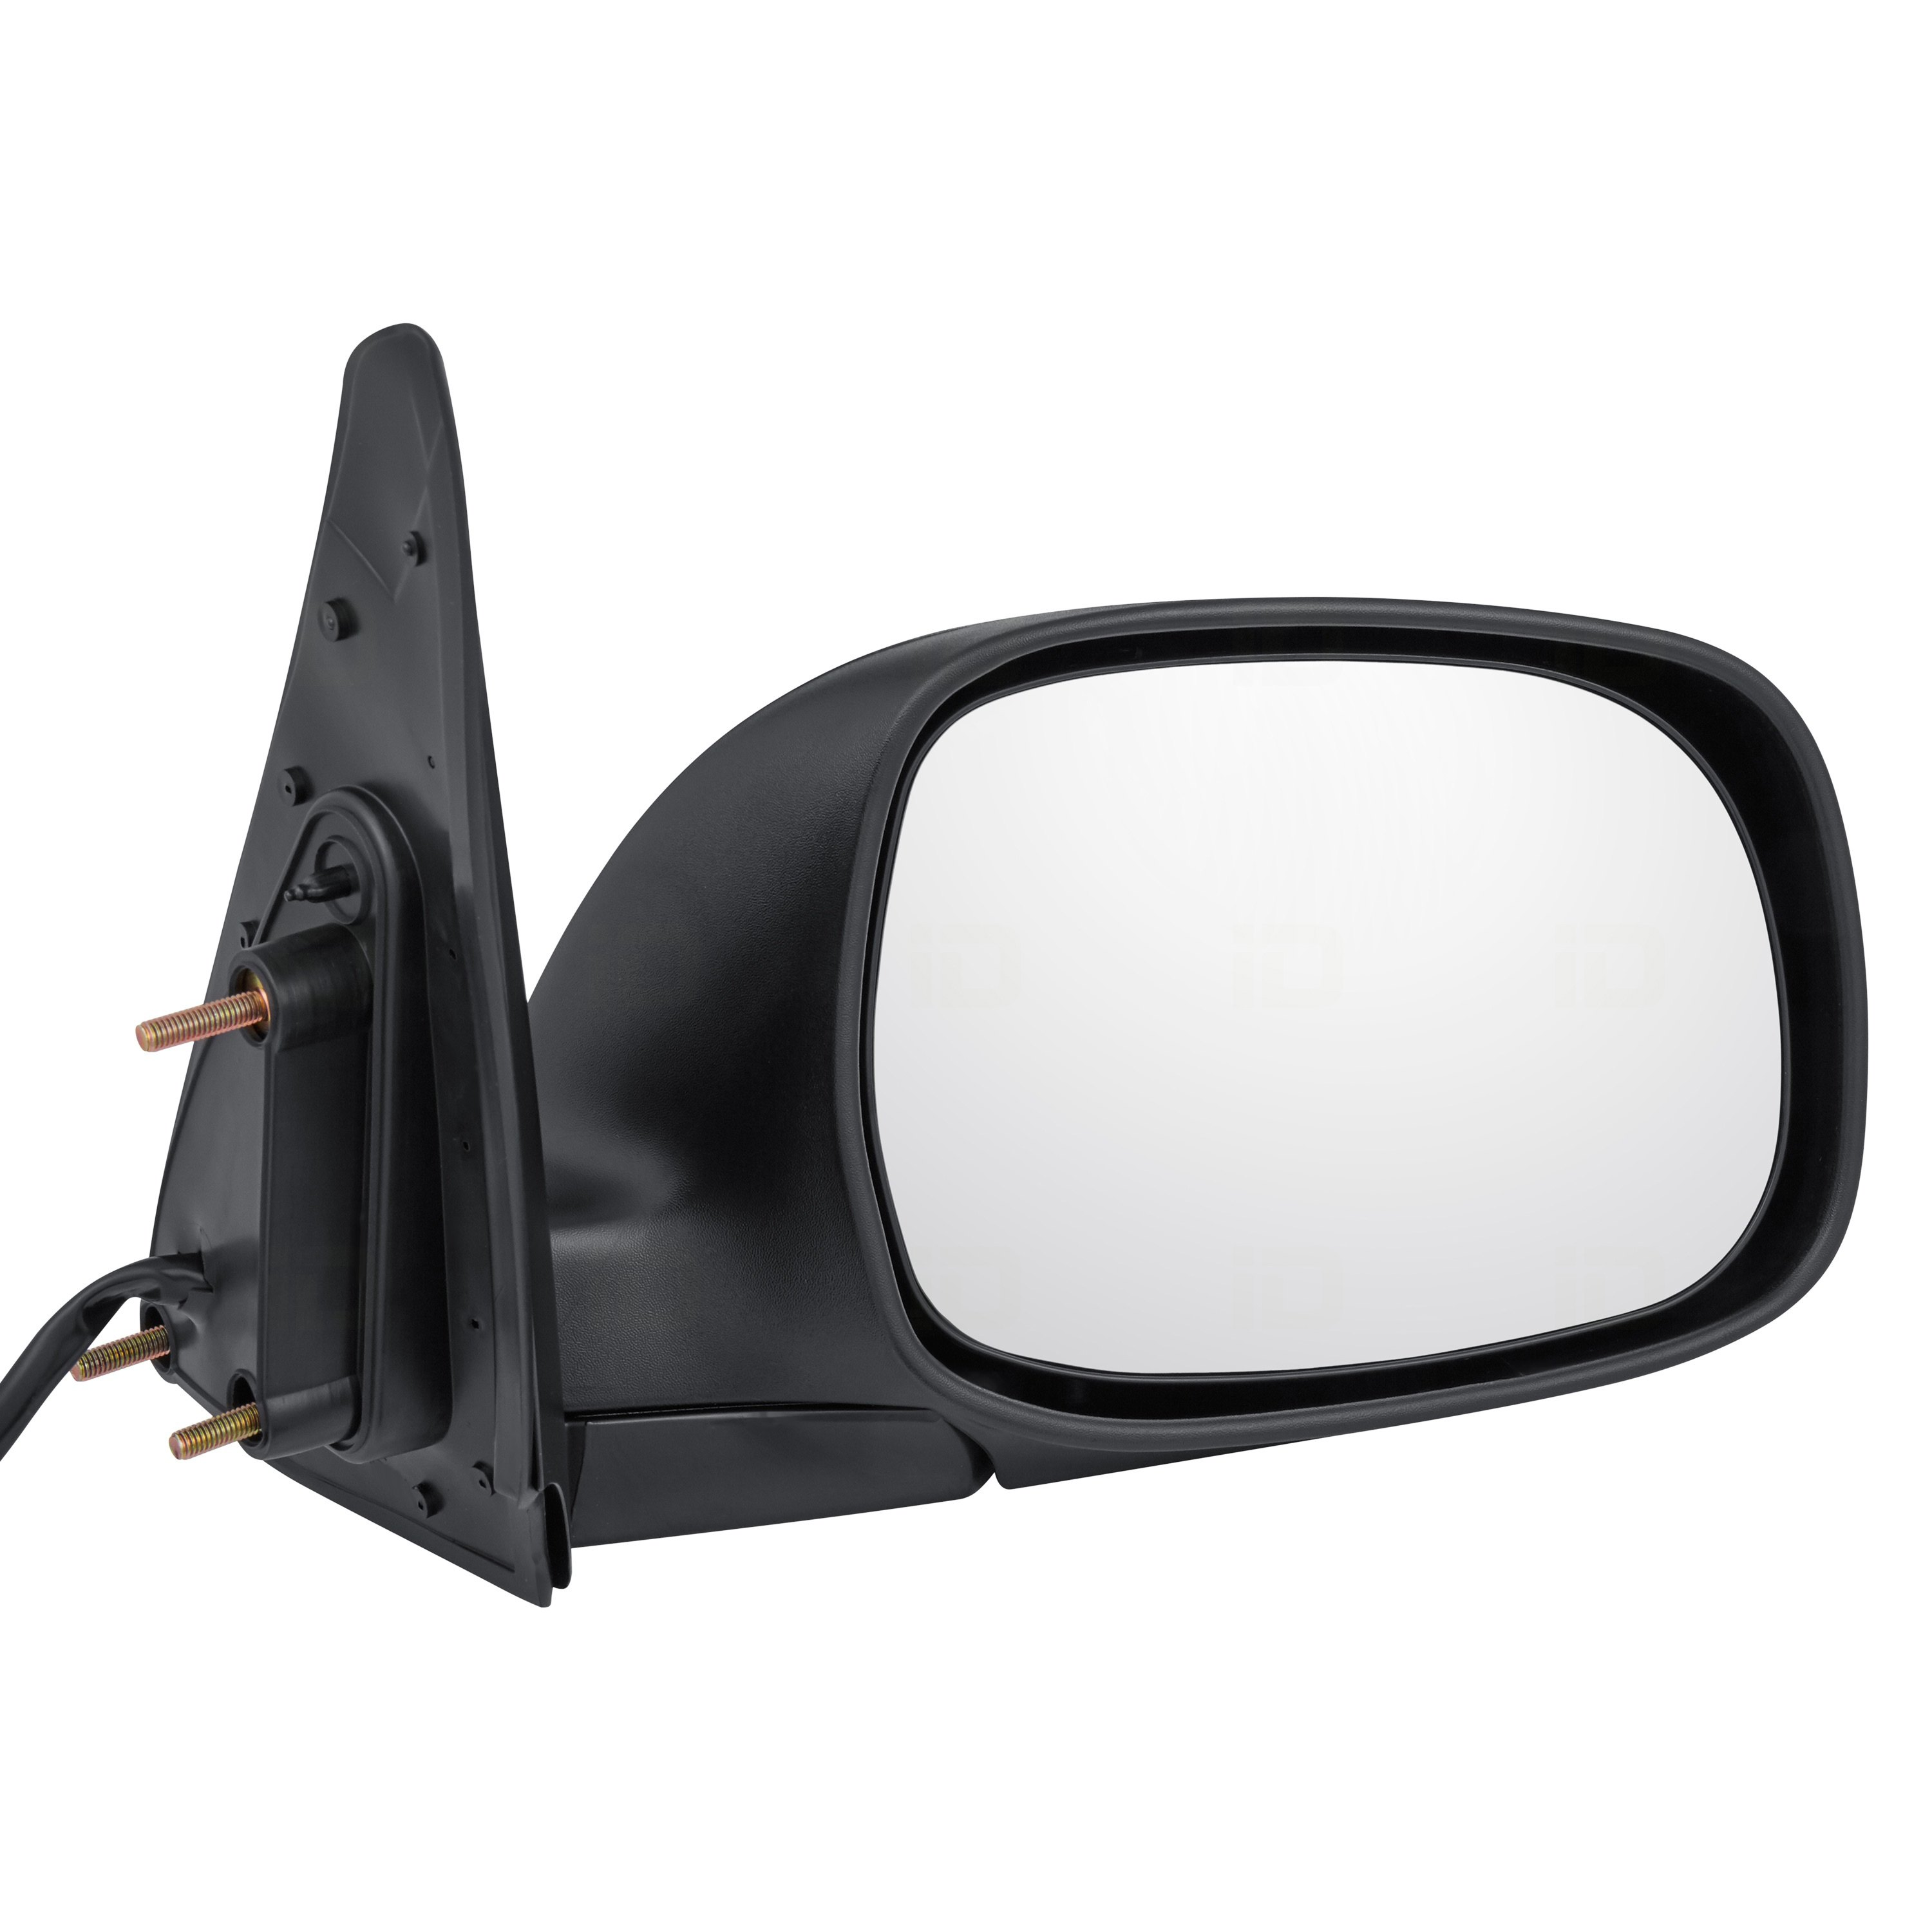 Genuine Toyota 87910-0C070-D1 Rear View Mirror Assembly